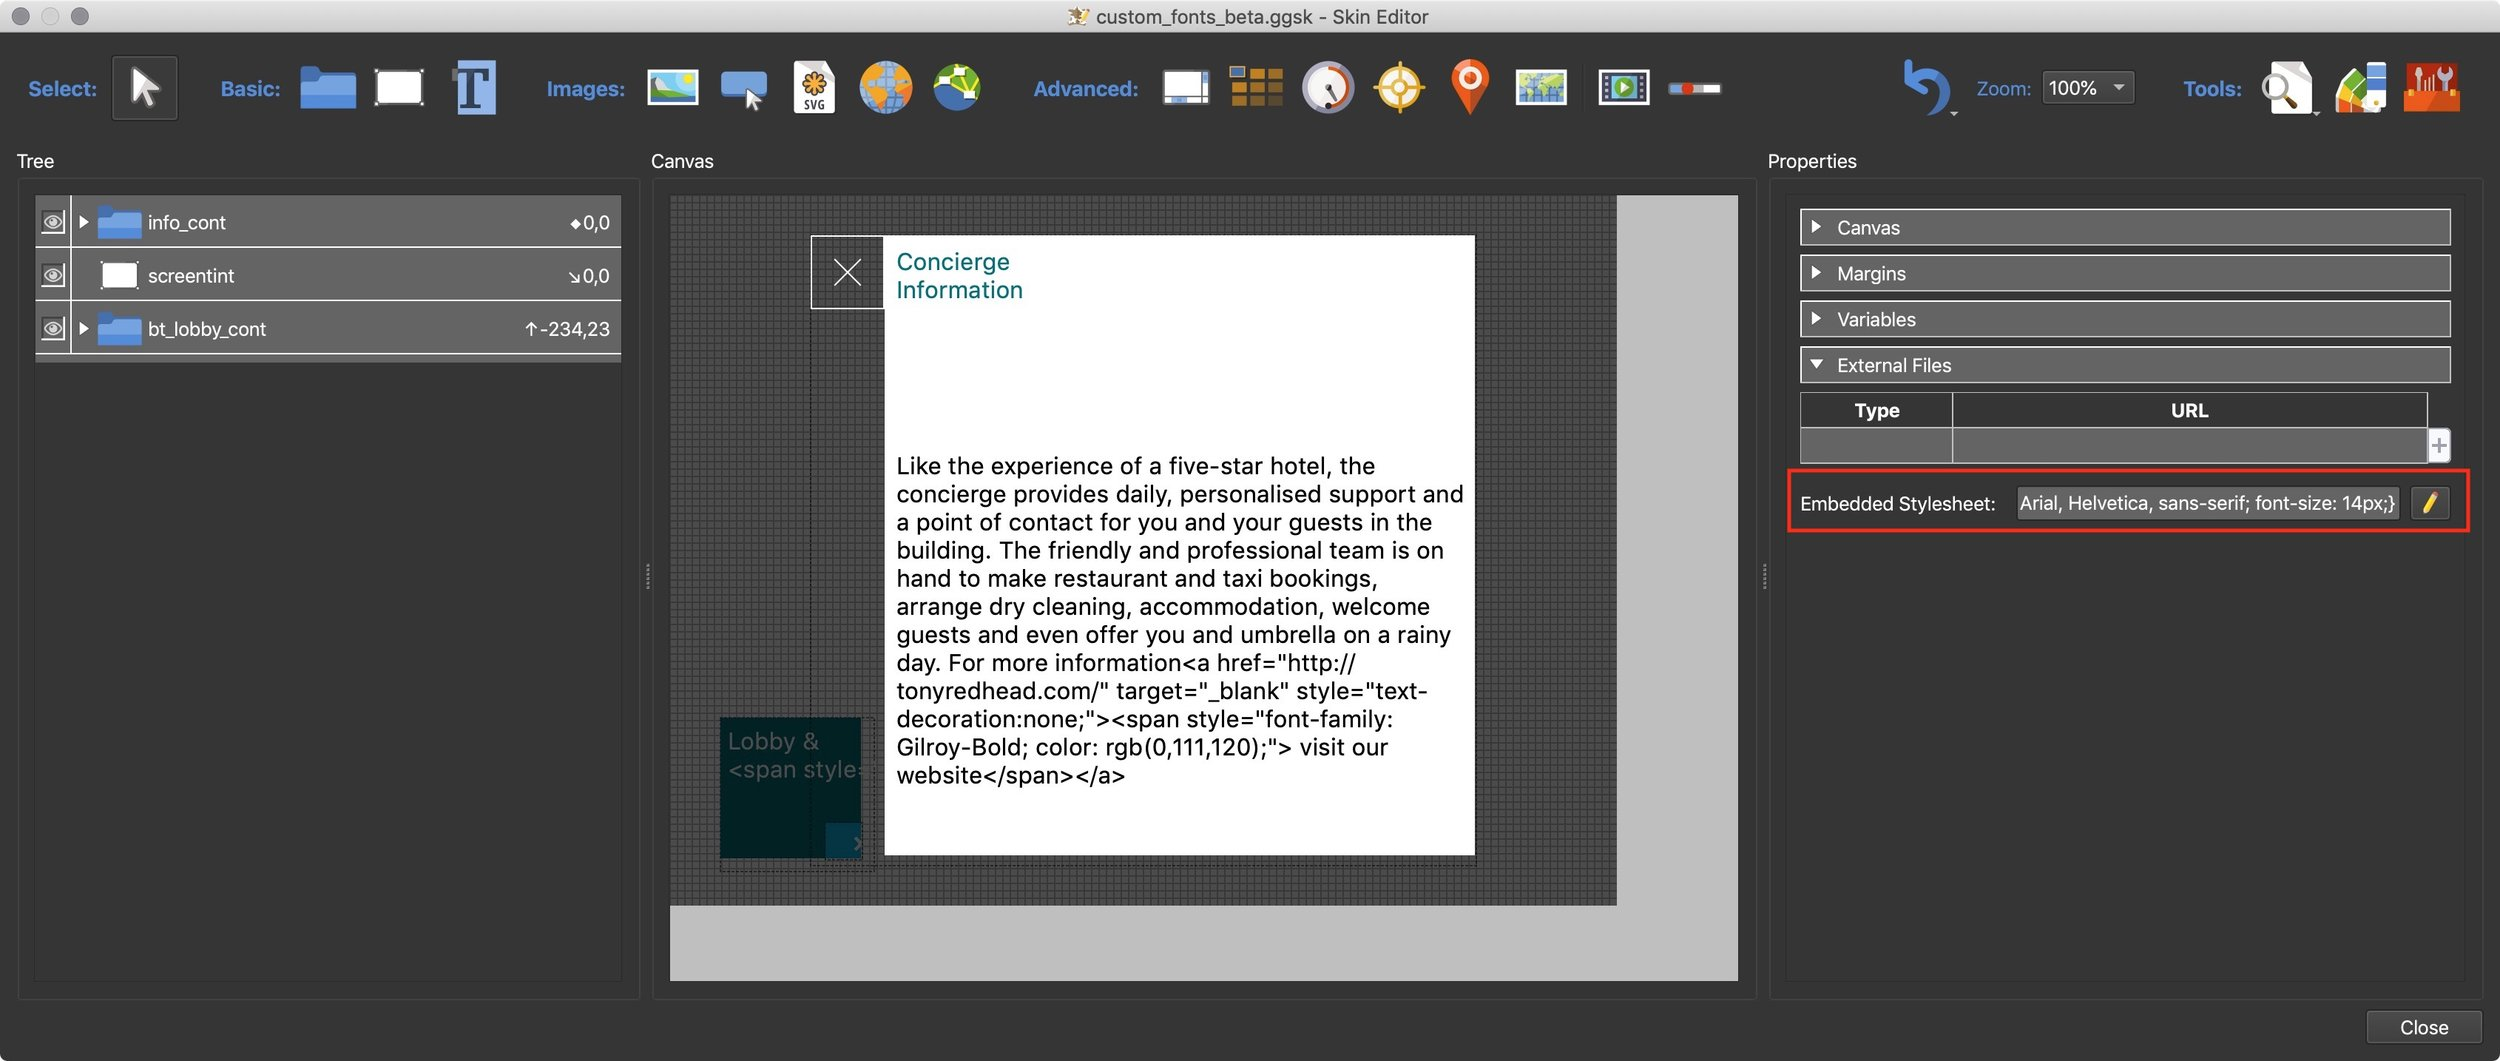 Figure #2: Skin with Canvas Properties, Embedded Stylesheet element